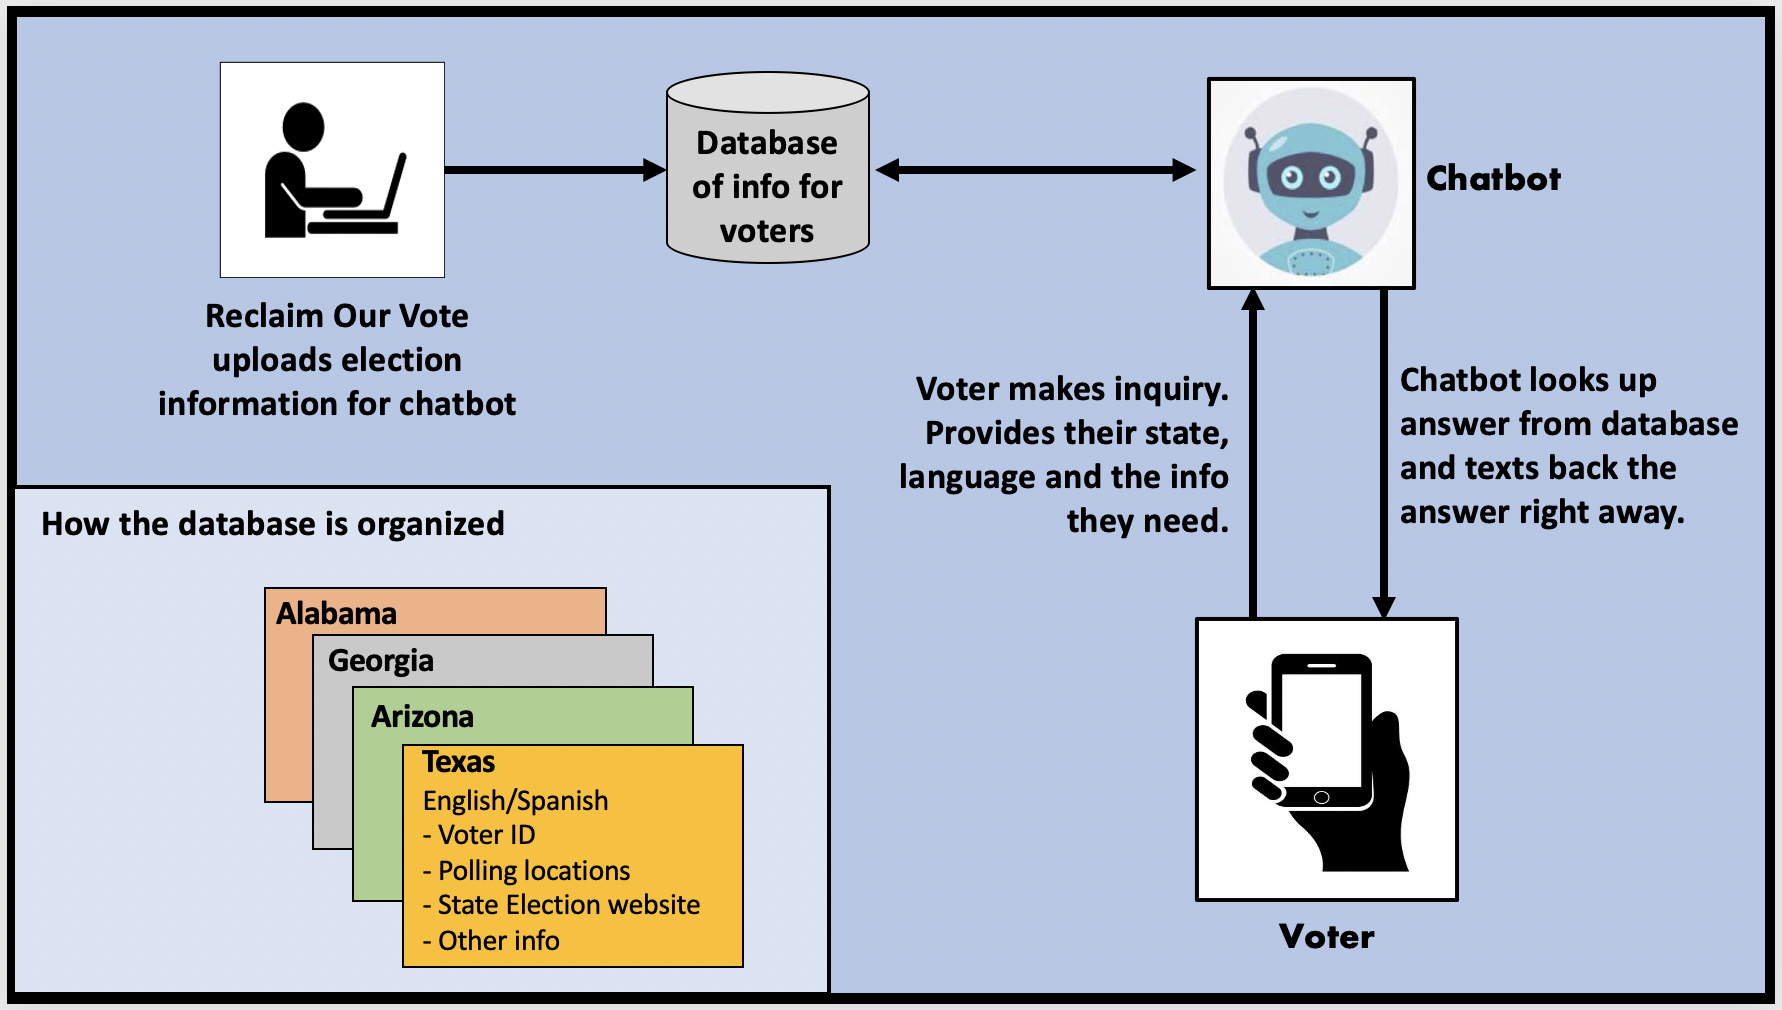 The Election Chatbot retrieves information from a database and texts the answer to the voter.